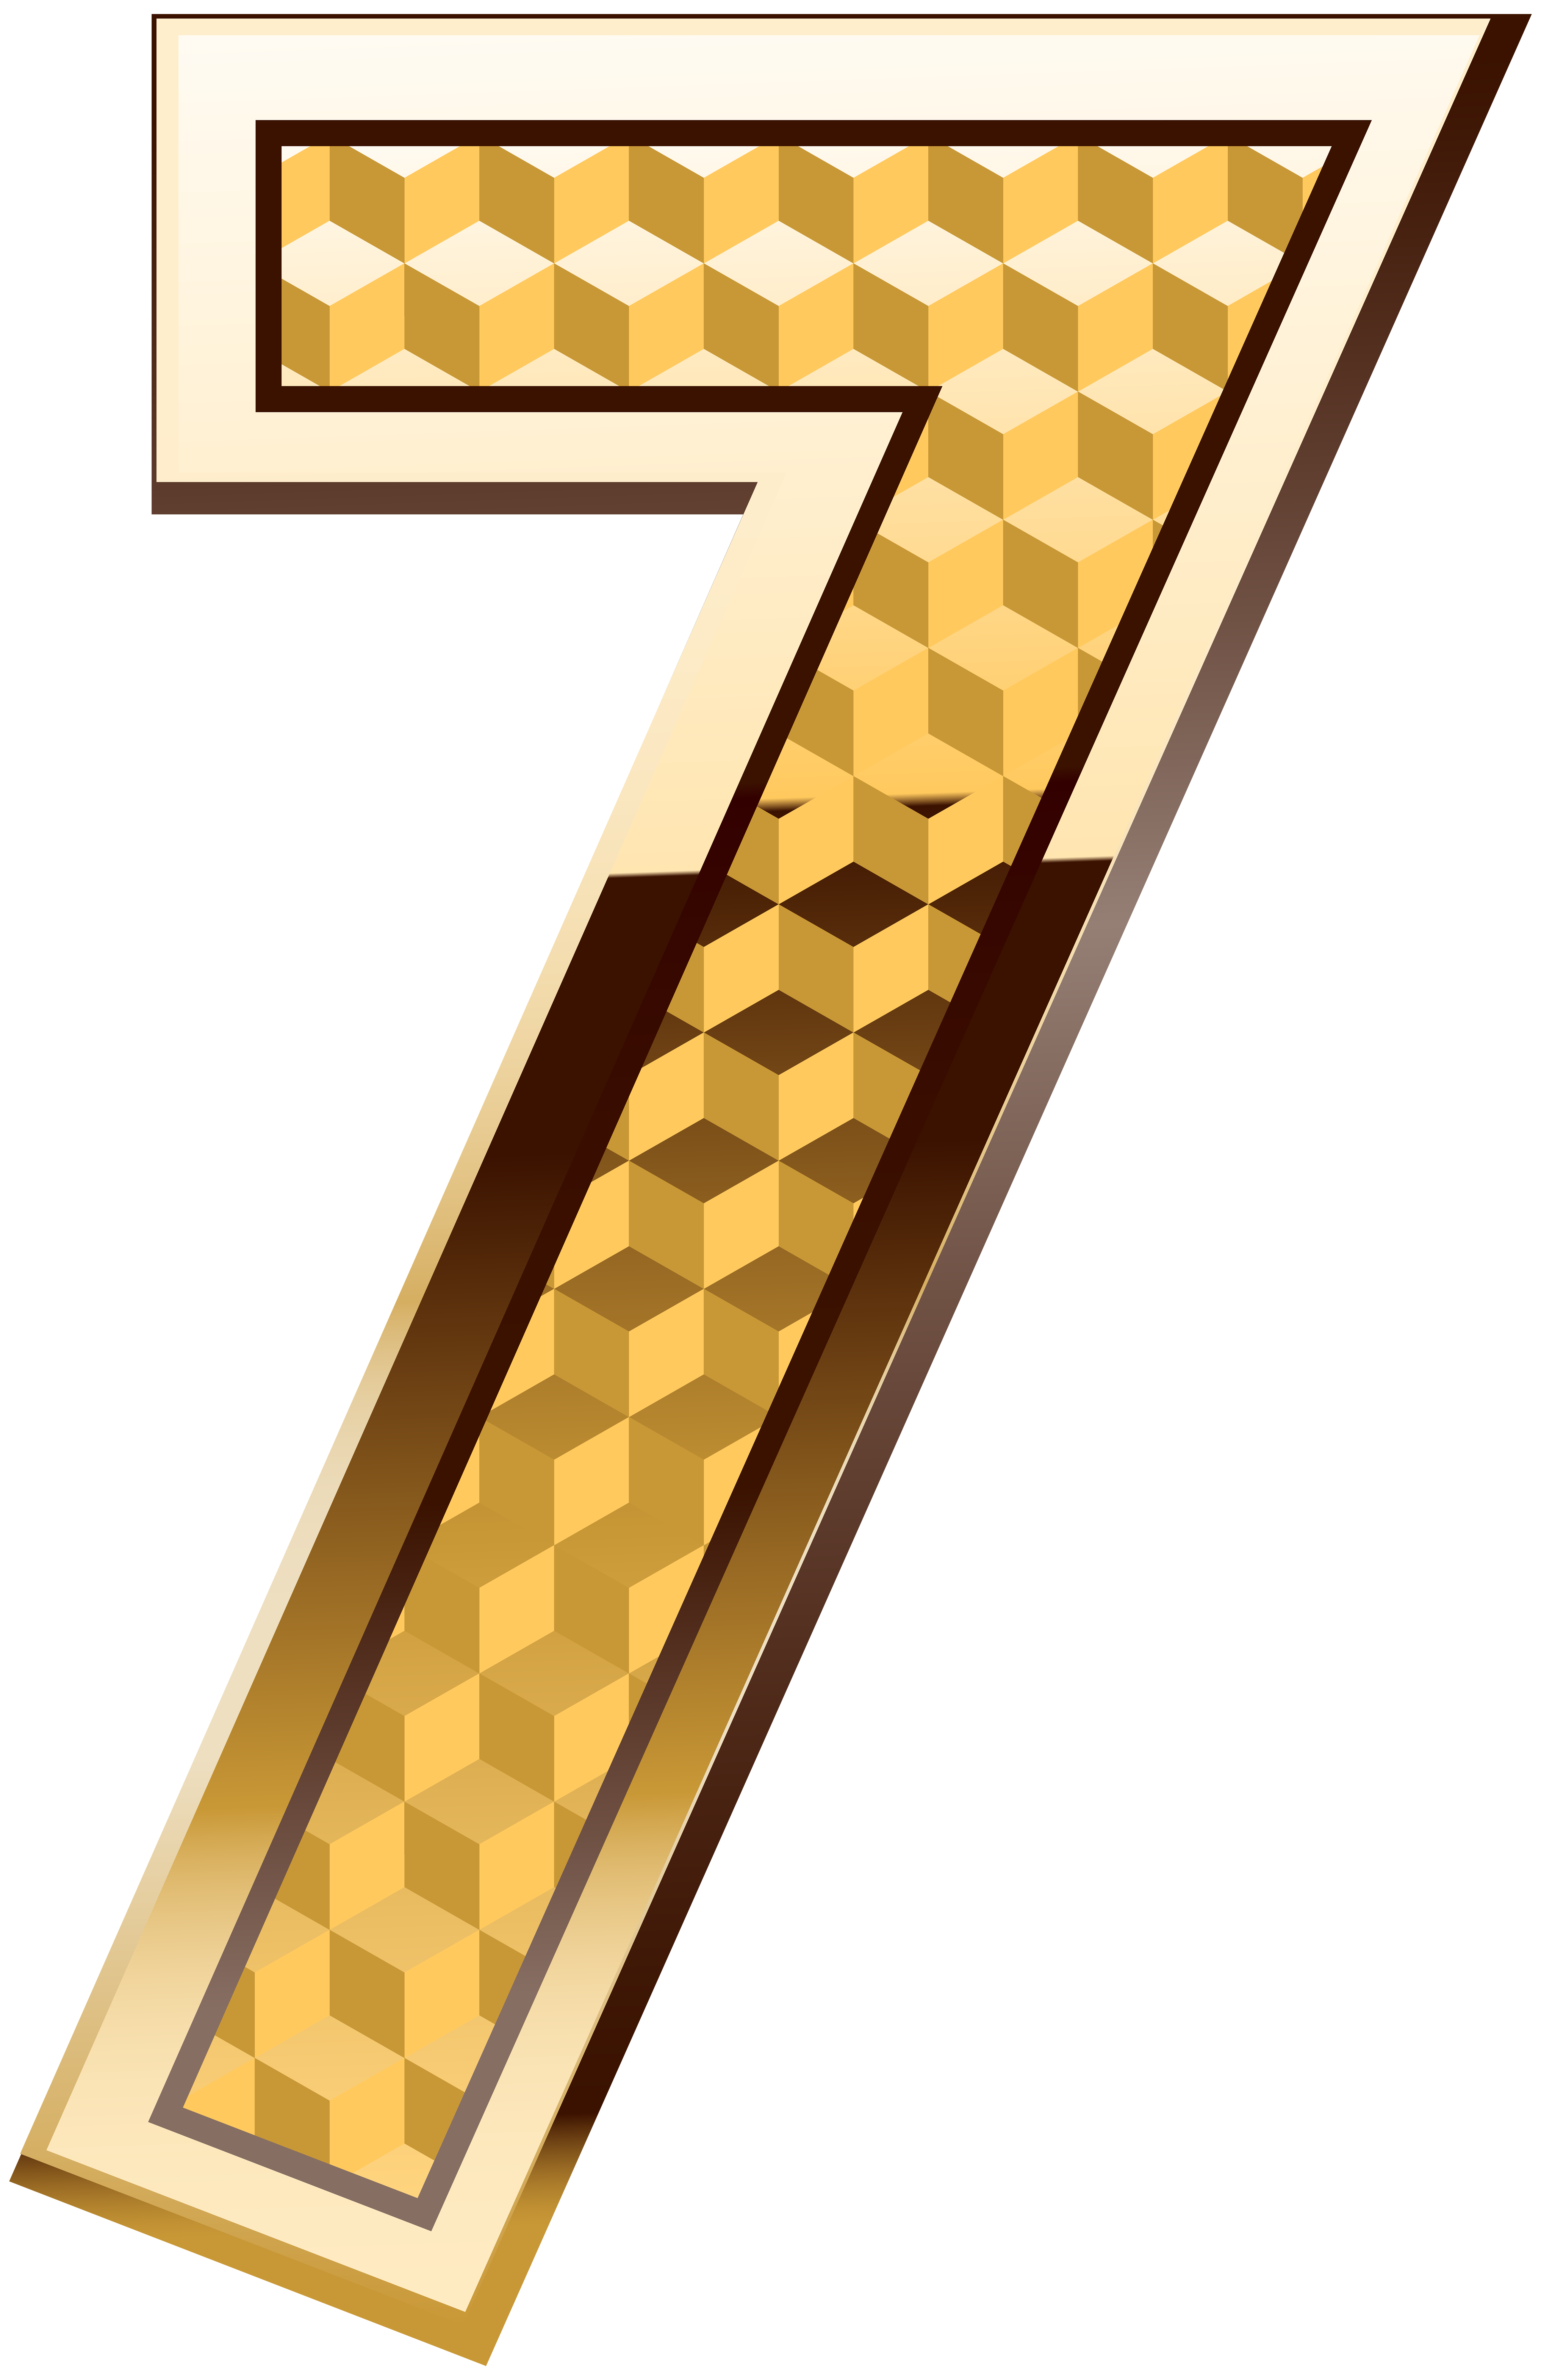 Gold Number Seven Png Clip Art Image Gallery Yopriceville High Quality Images And Transparent Png Free Clipart Clip Art Art Images Free Clip Art